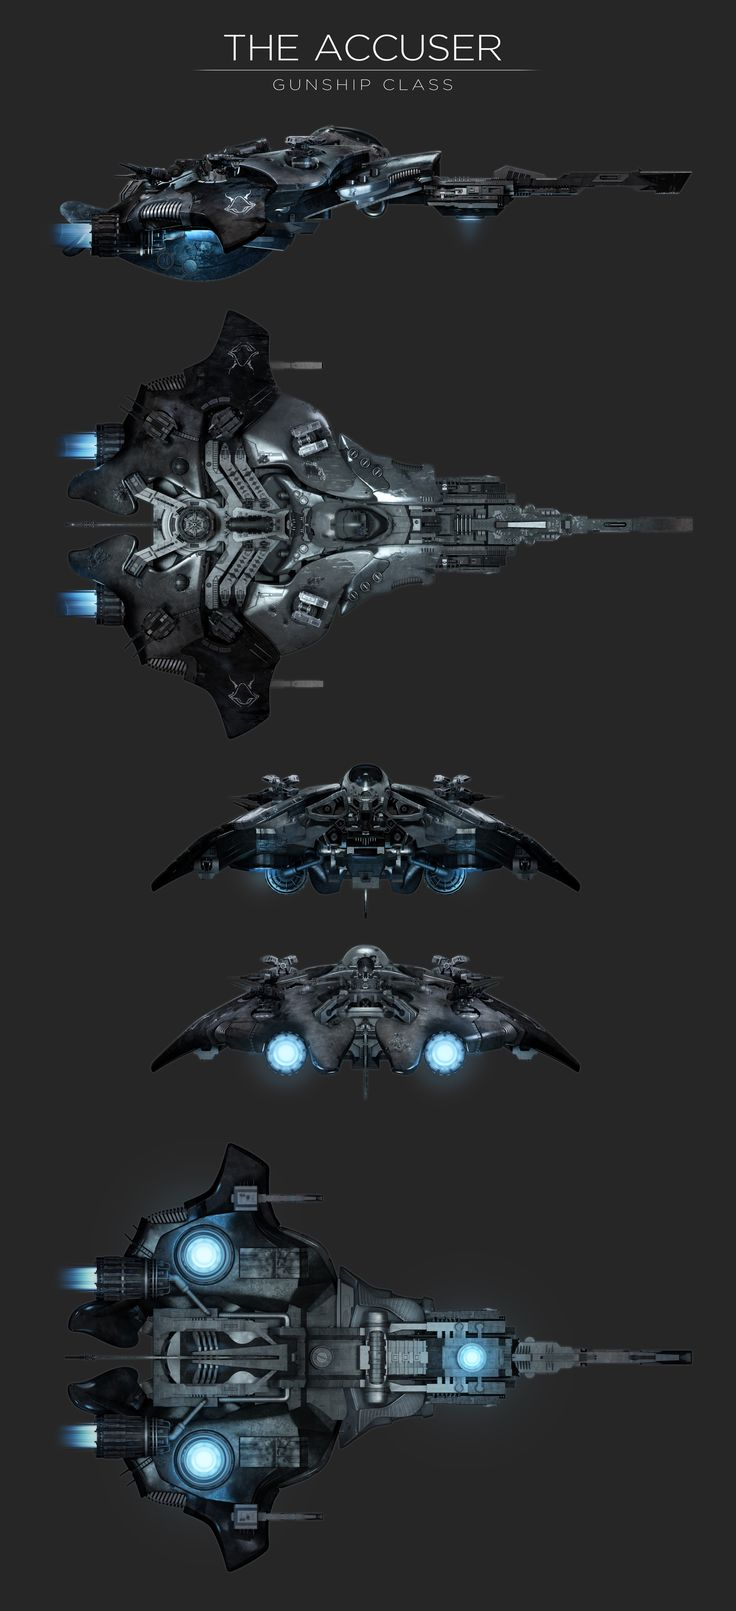 ArtStation - The Accuser - gunship concept design, Mike Luard